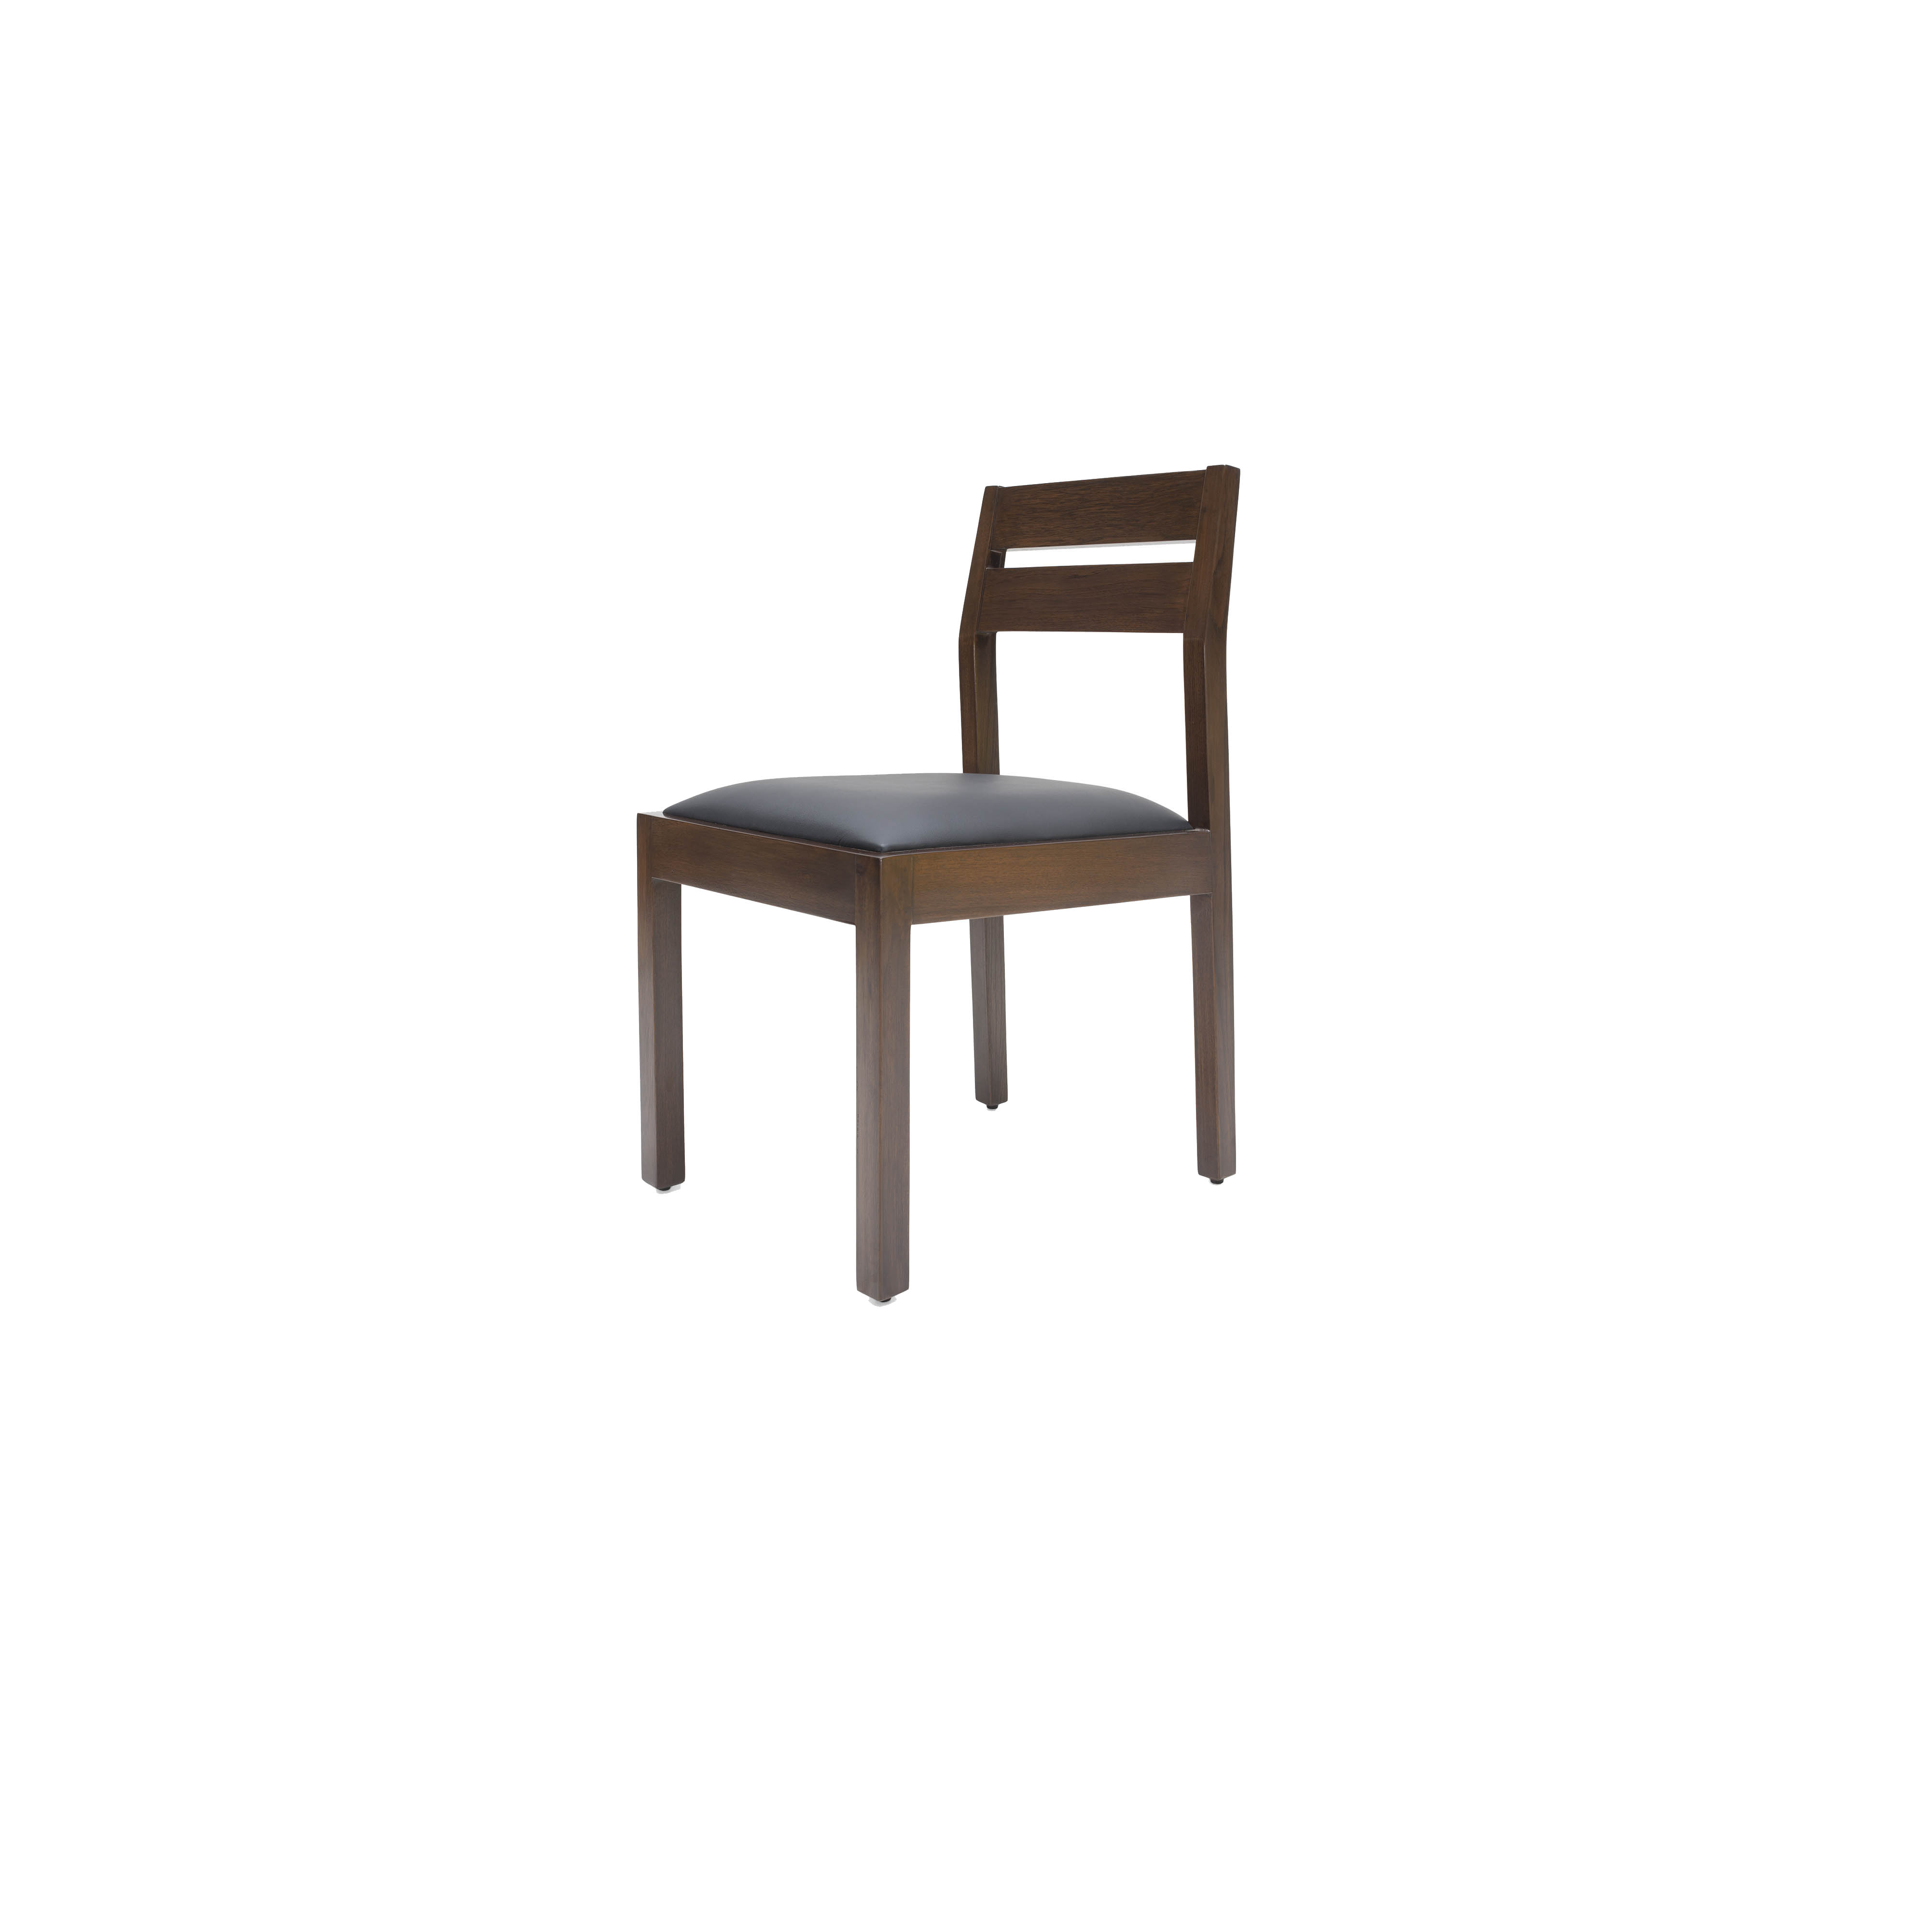 Kinsey dining chair